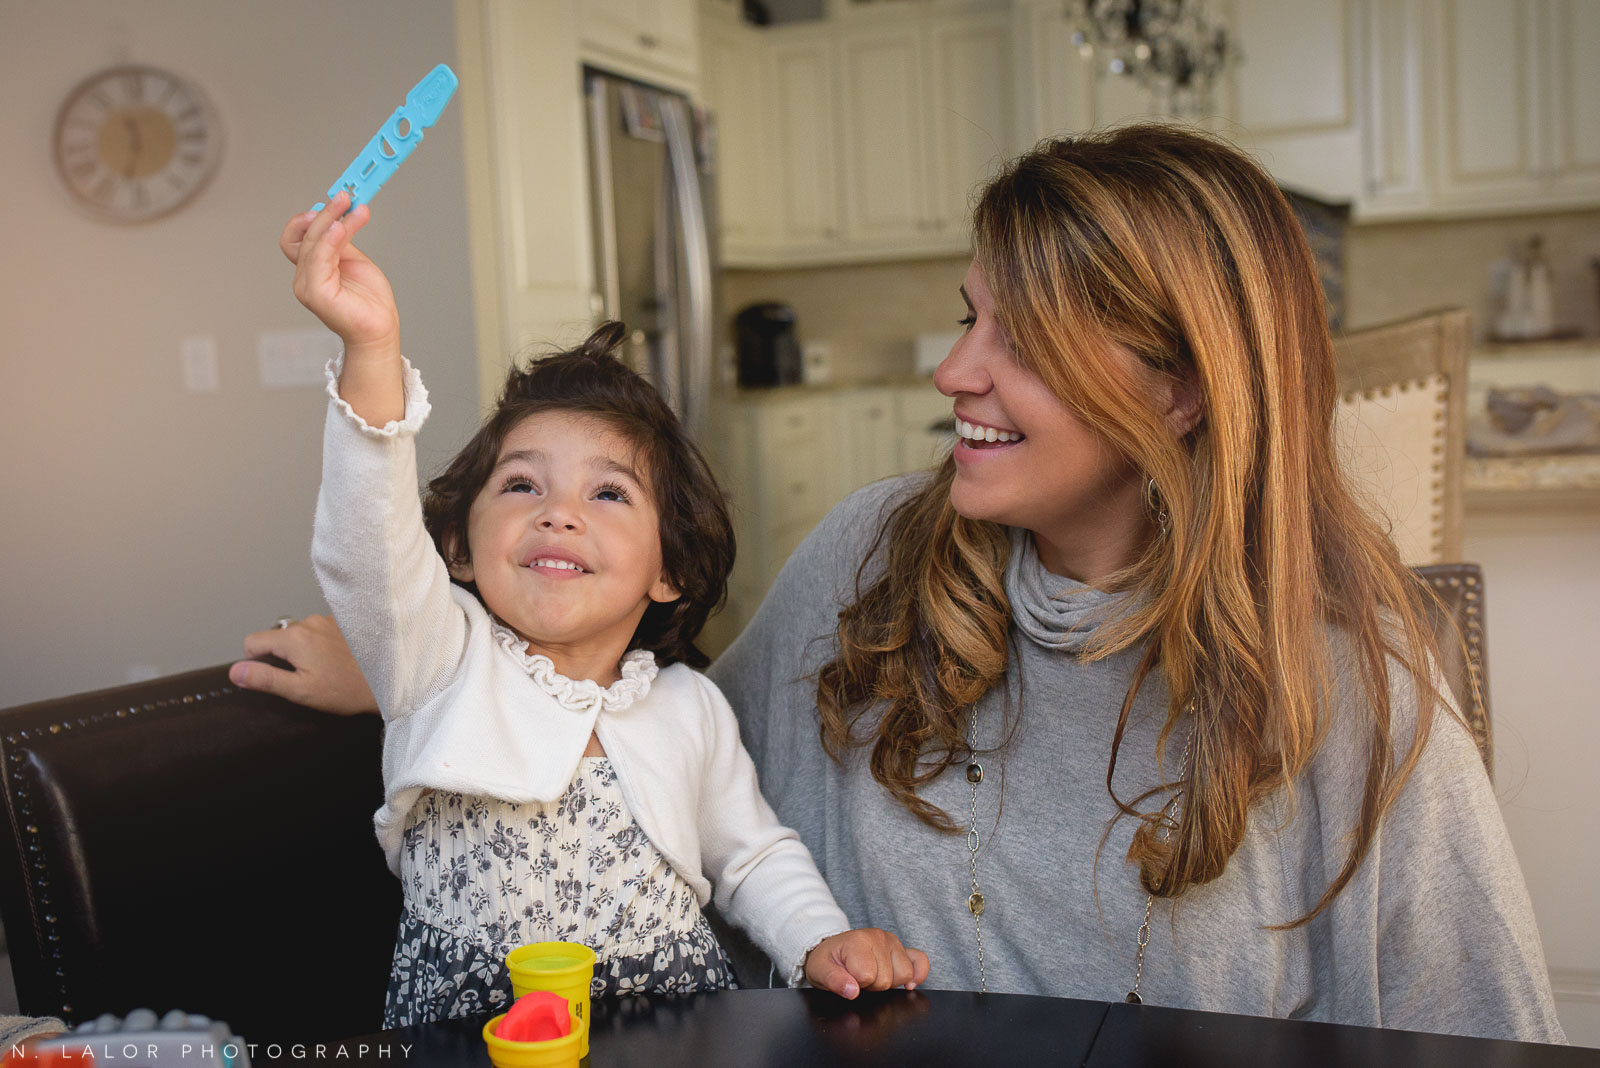 Happy smiling little girl playing play-doh with her Mom. Lifestyle portrait by N. Lalor Photography.